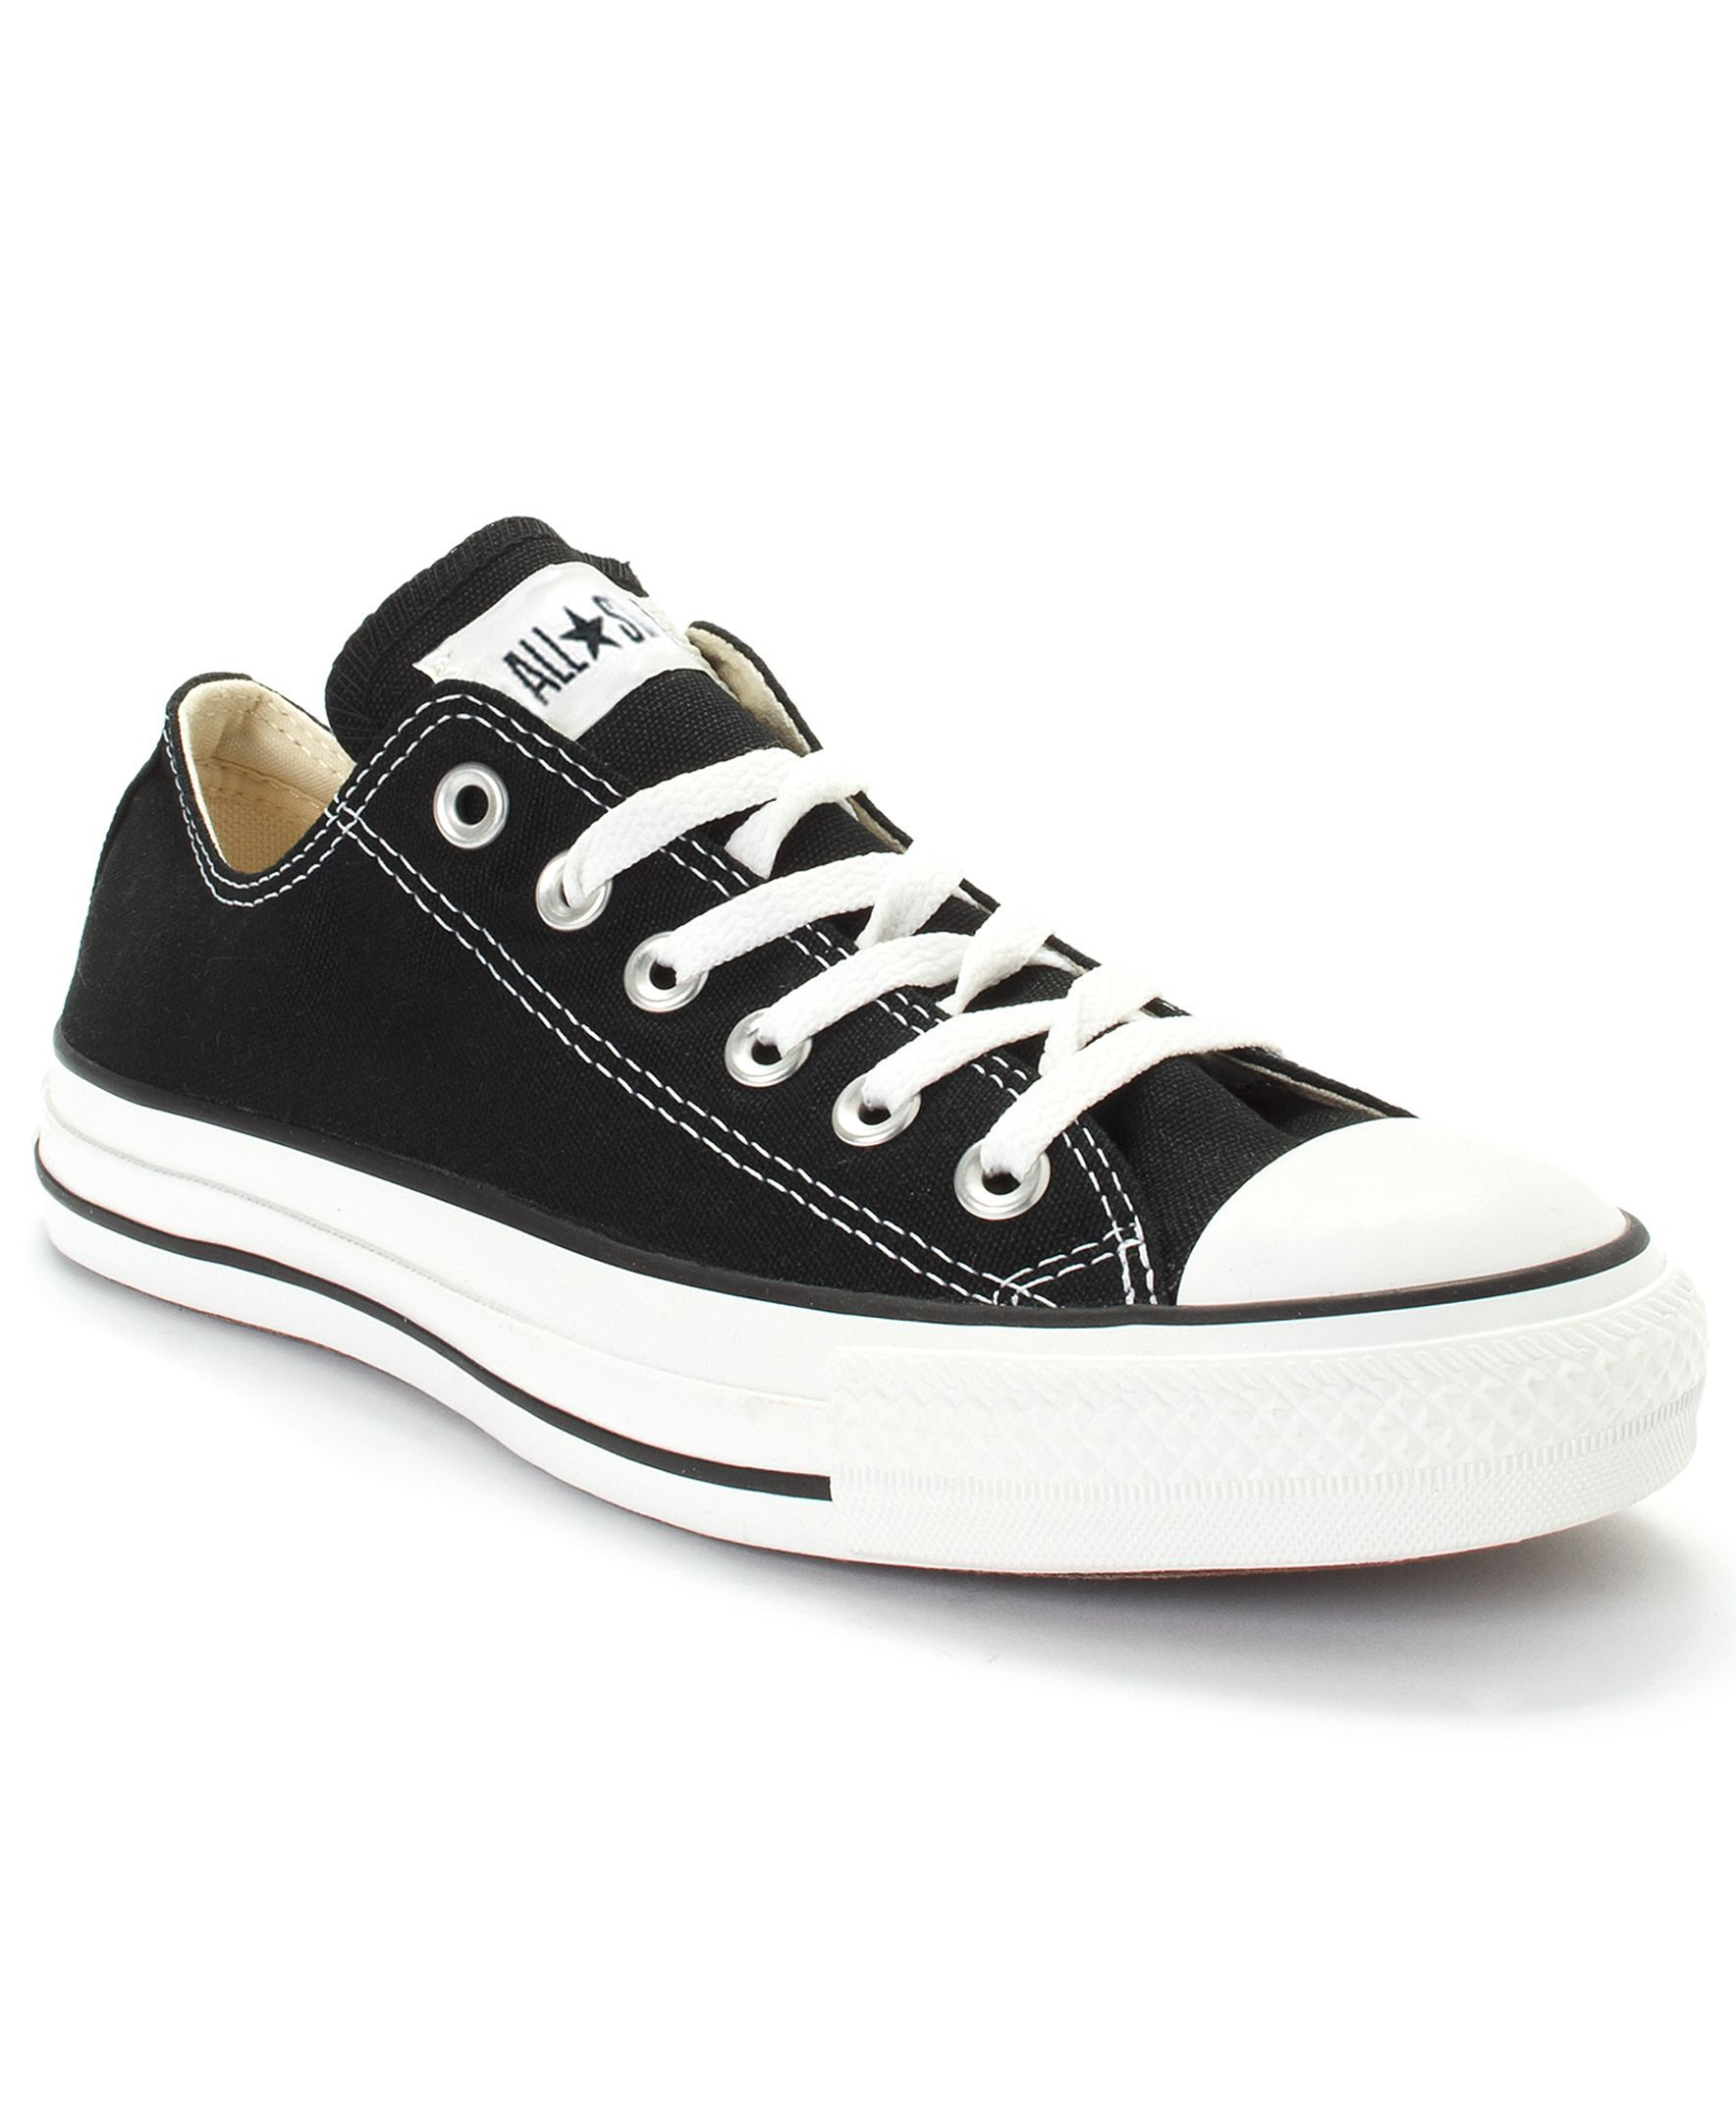 Converse Women's Chuck Taylor All Star Ox Sneakers from